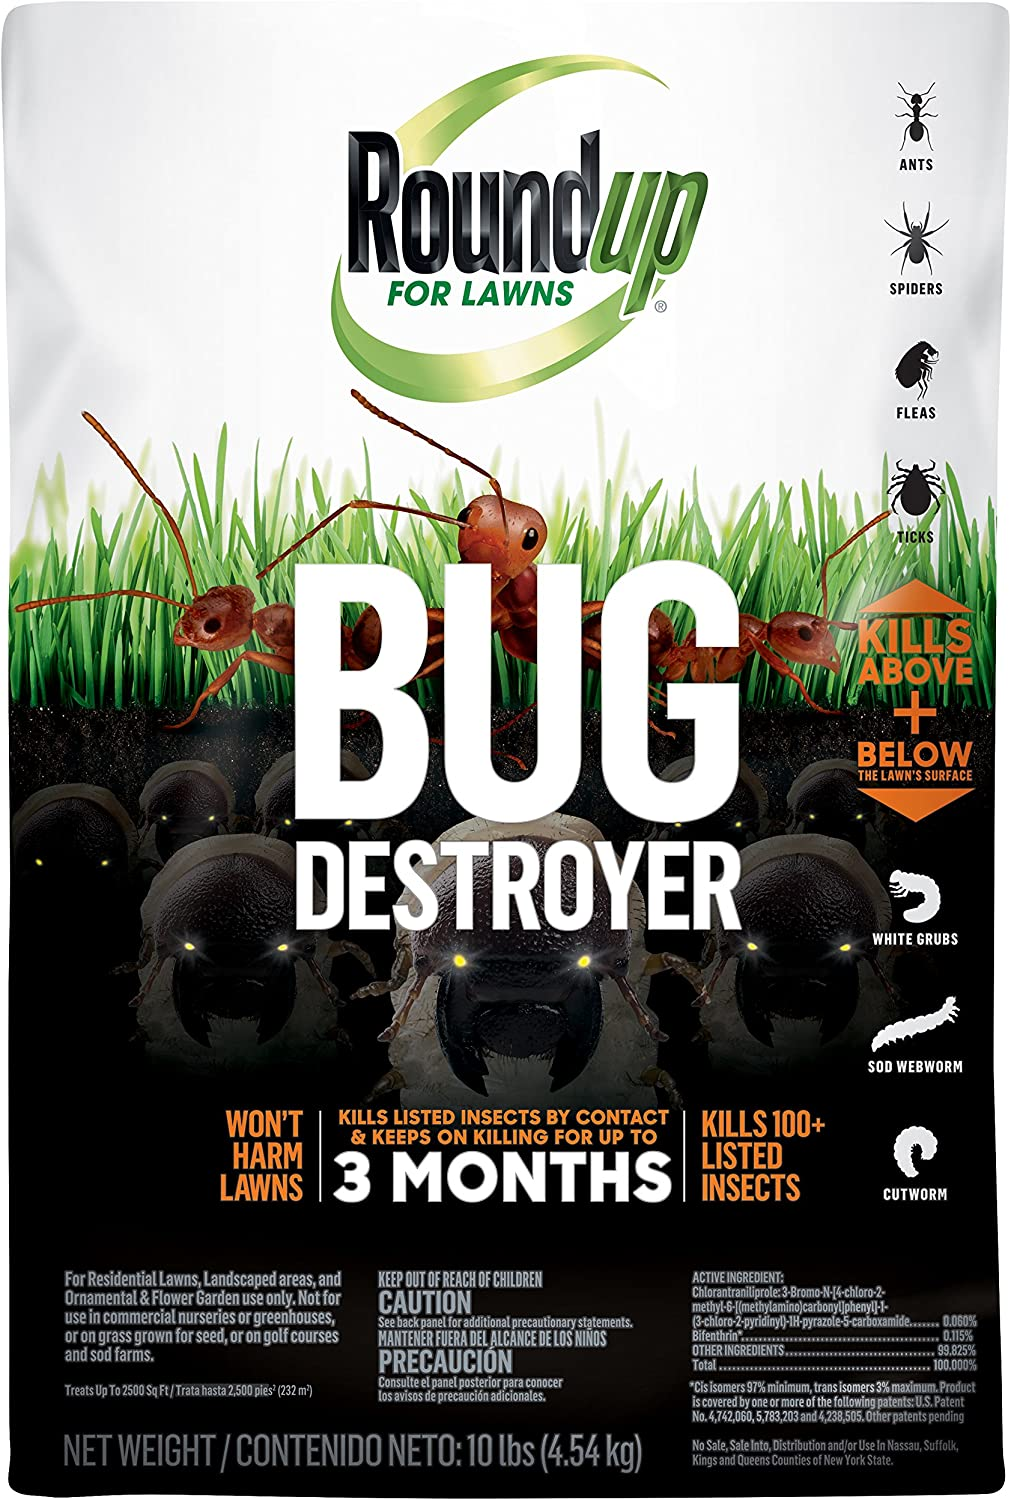 Roundup for Lawns Bug Destroyer - Kills Ants, Spiders, Fleas, Grubs, Ticks for up to 3 Months, Use on Residential Lawns, Home Perimeters, Ornamental & Flower Gardens, Treats up to 2,500 sq ft, 10 lb.